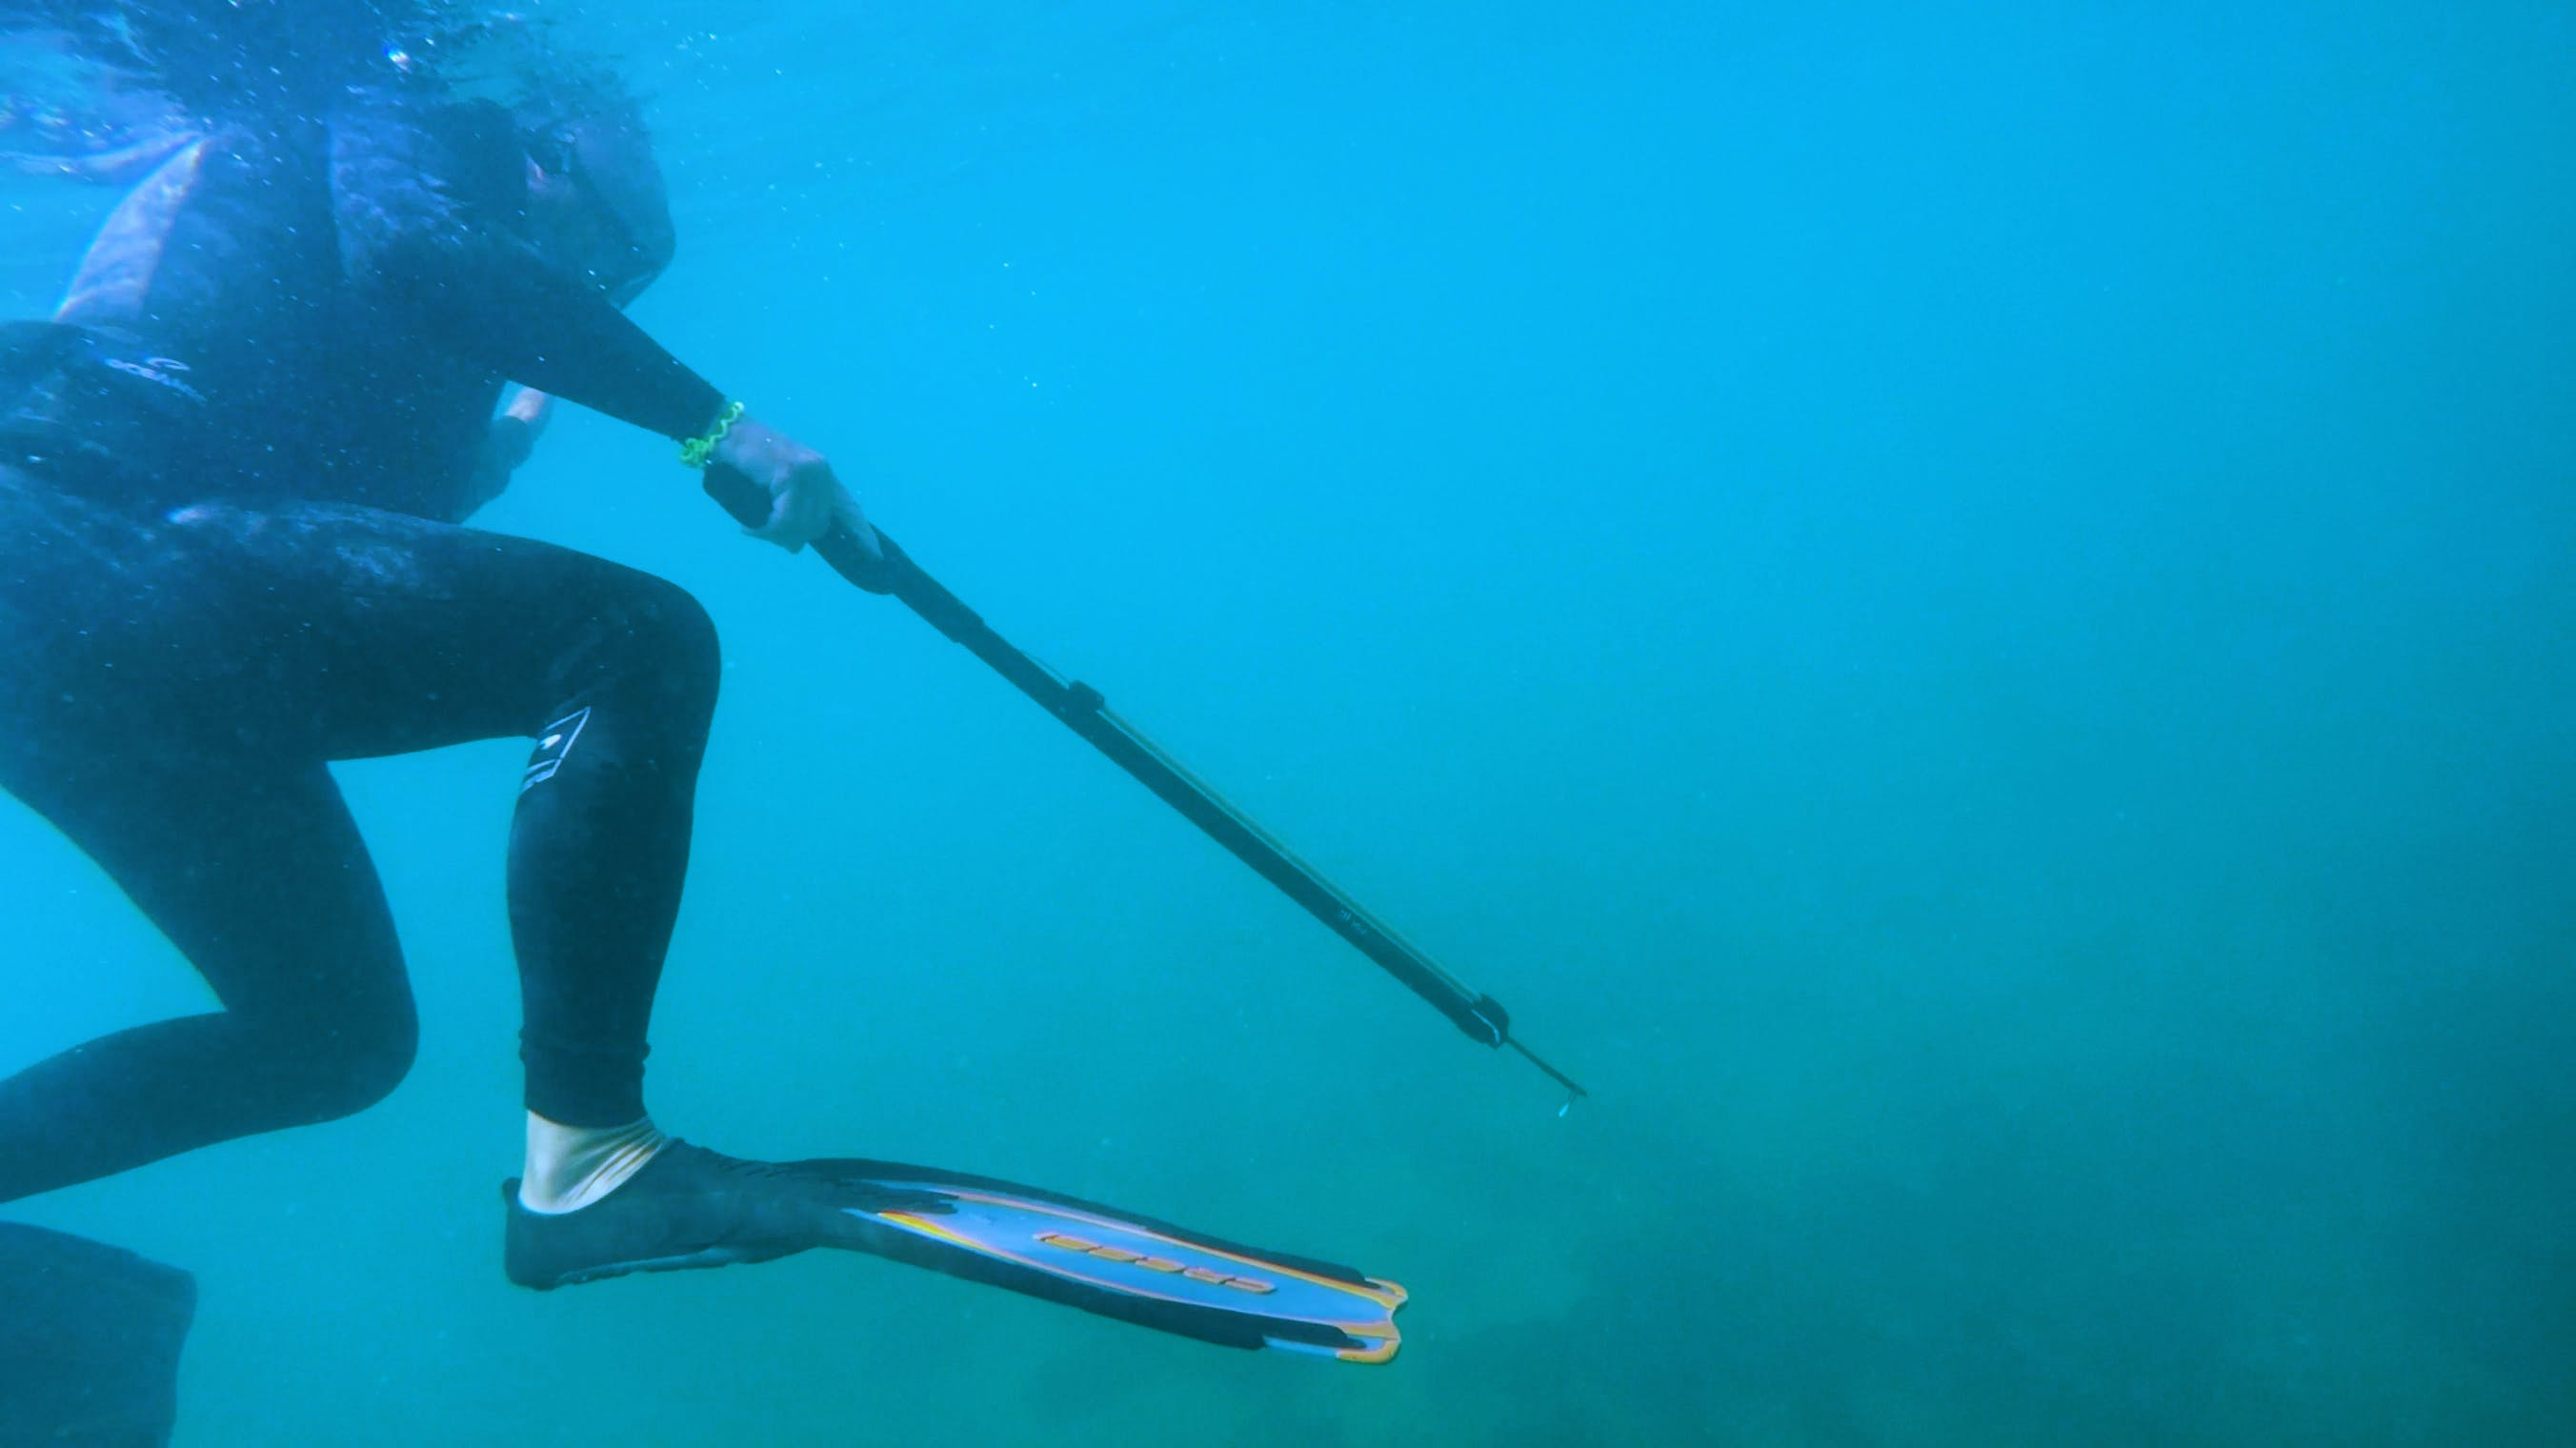 Diver Holding Speargun